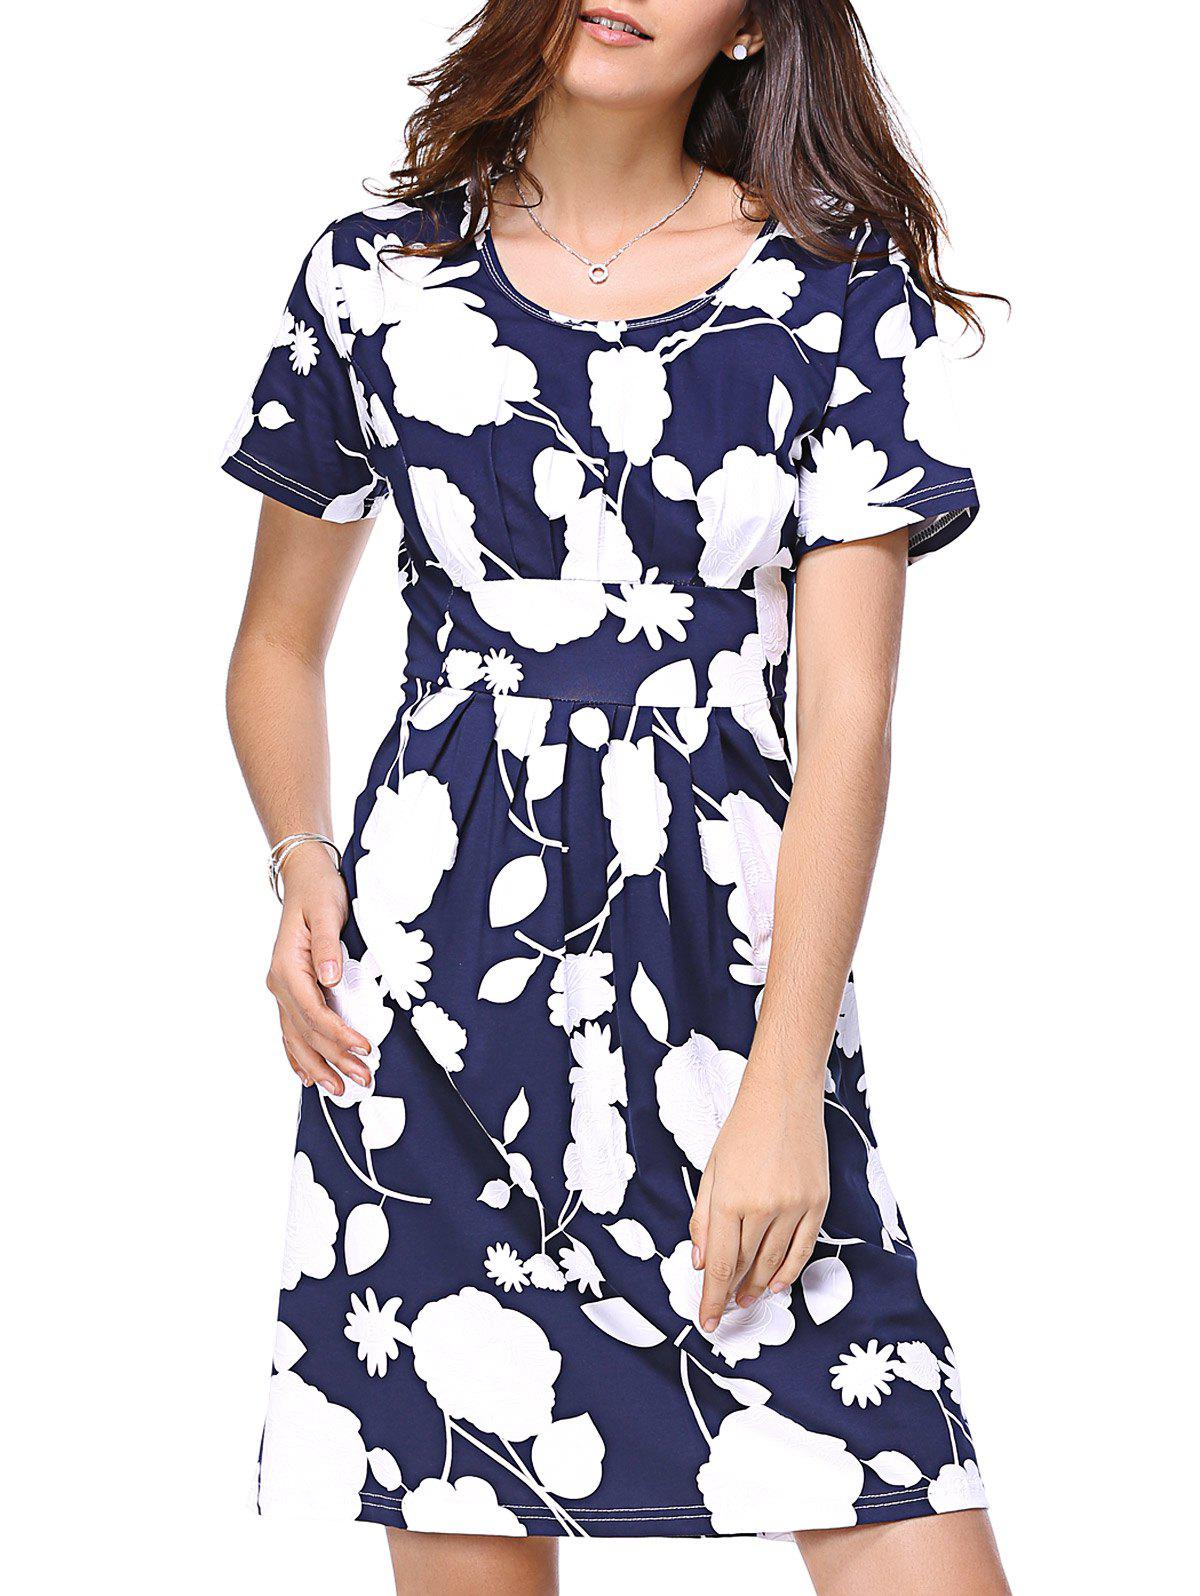 Elegant Waist-controlled Short Sleeve Floral Print Dress For Women